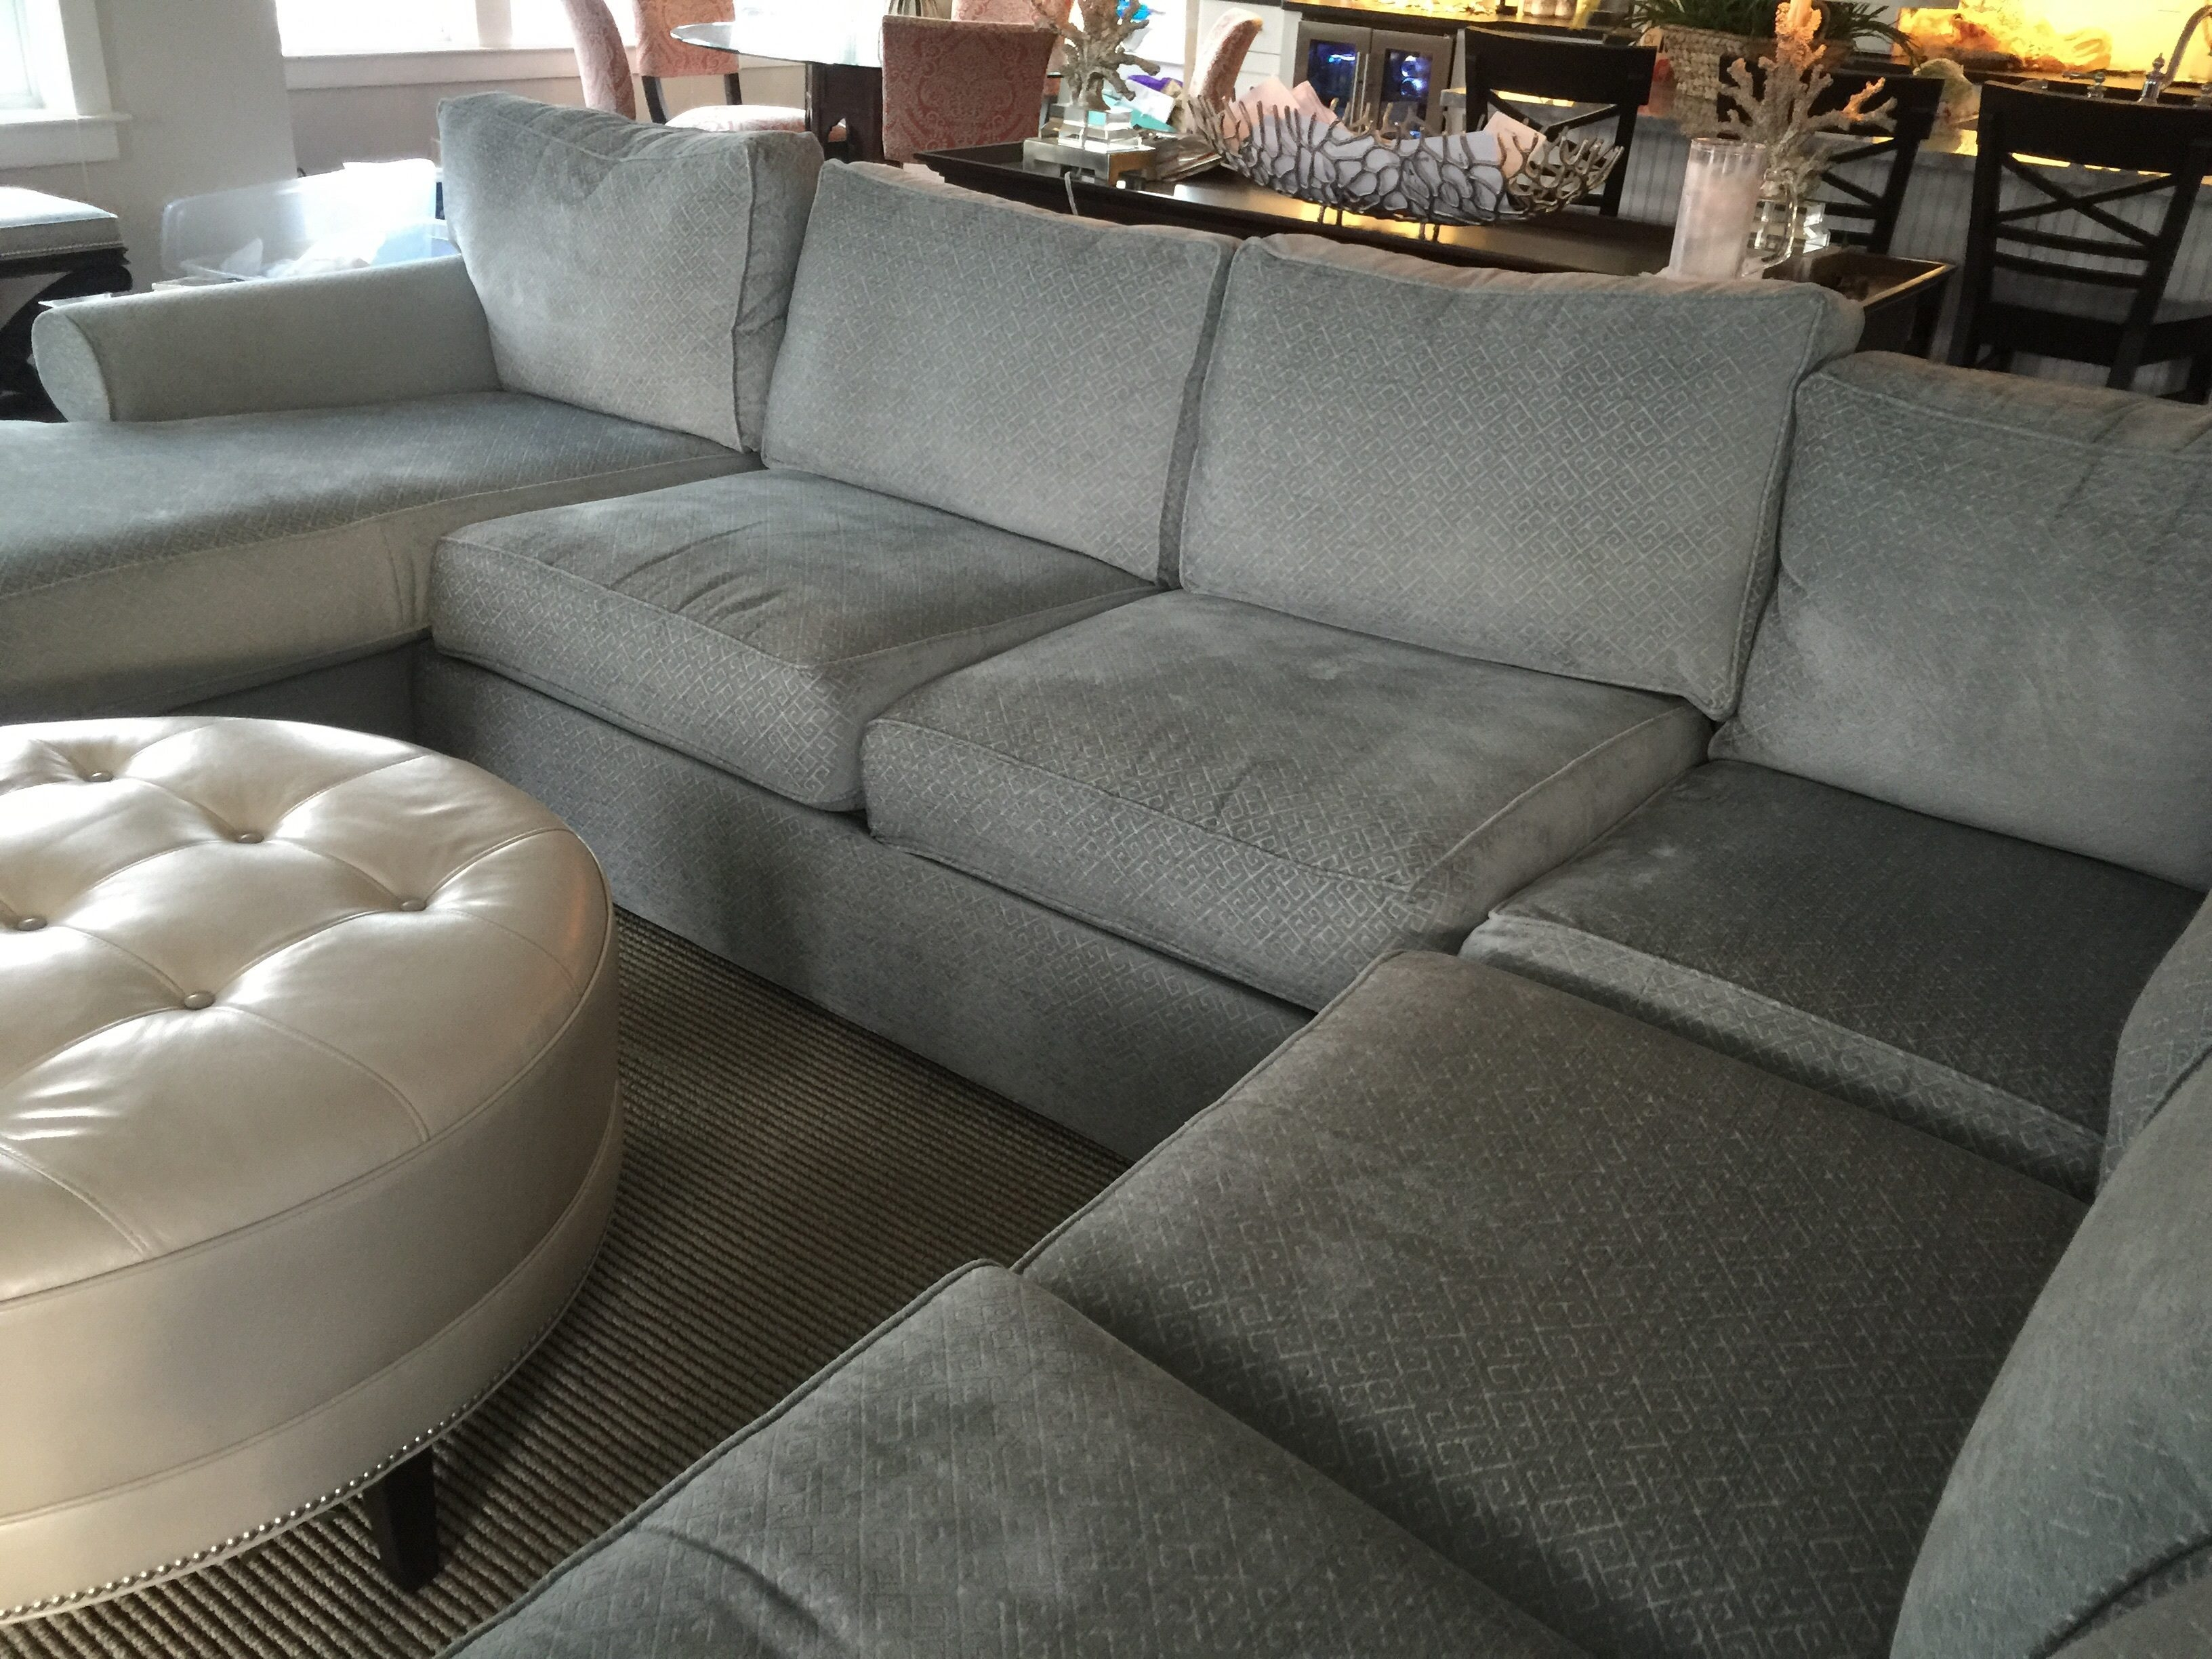 Decor Grey Sectional Sofa Craigslist West Palm Beach Furniture In Craigslist Sectional Sofa (View 2 of 15)